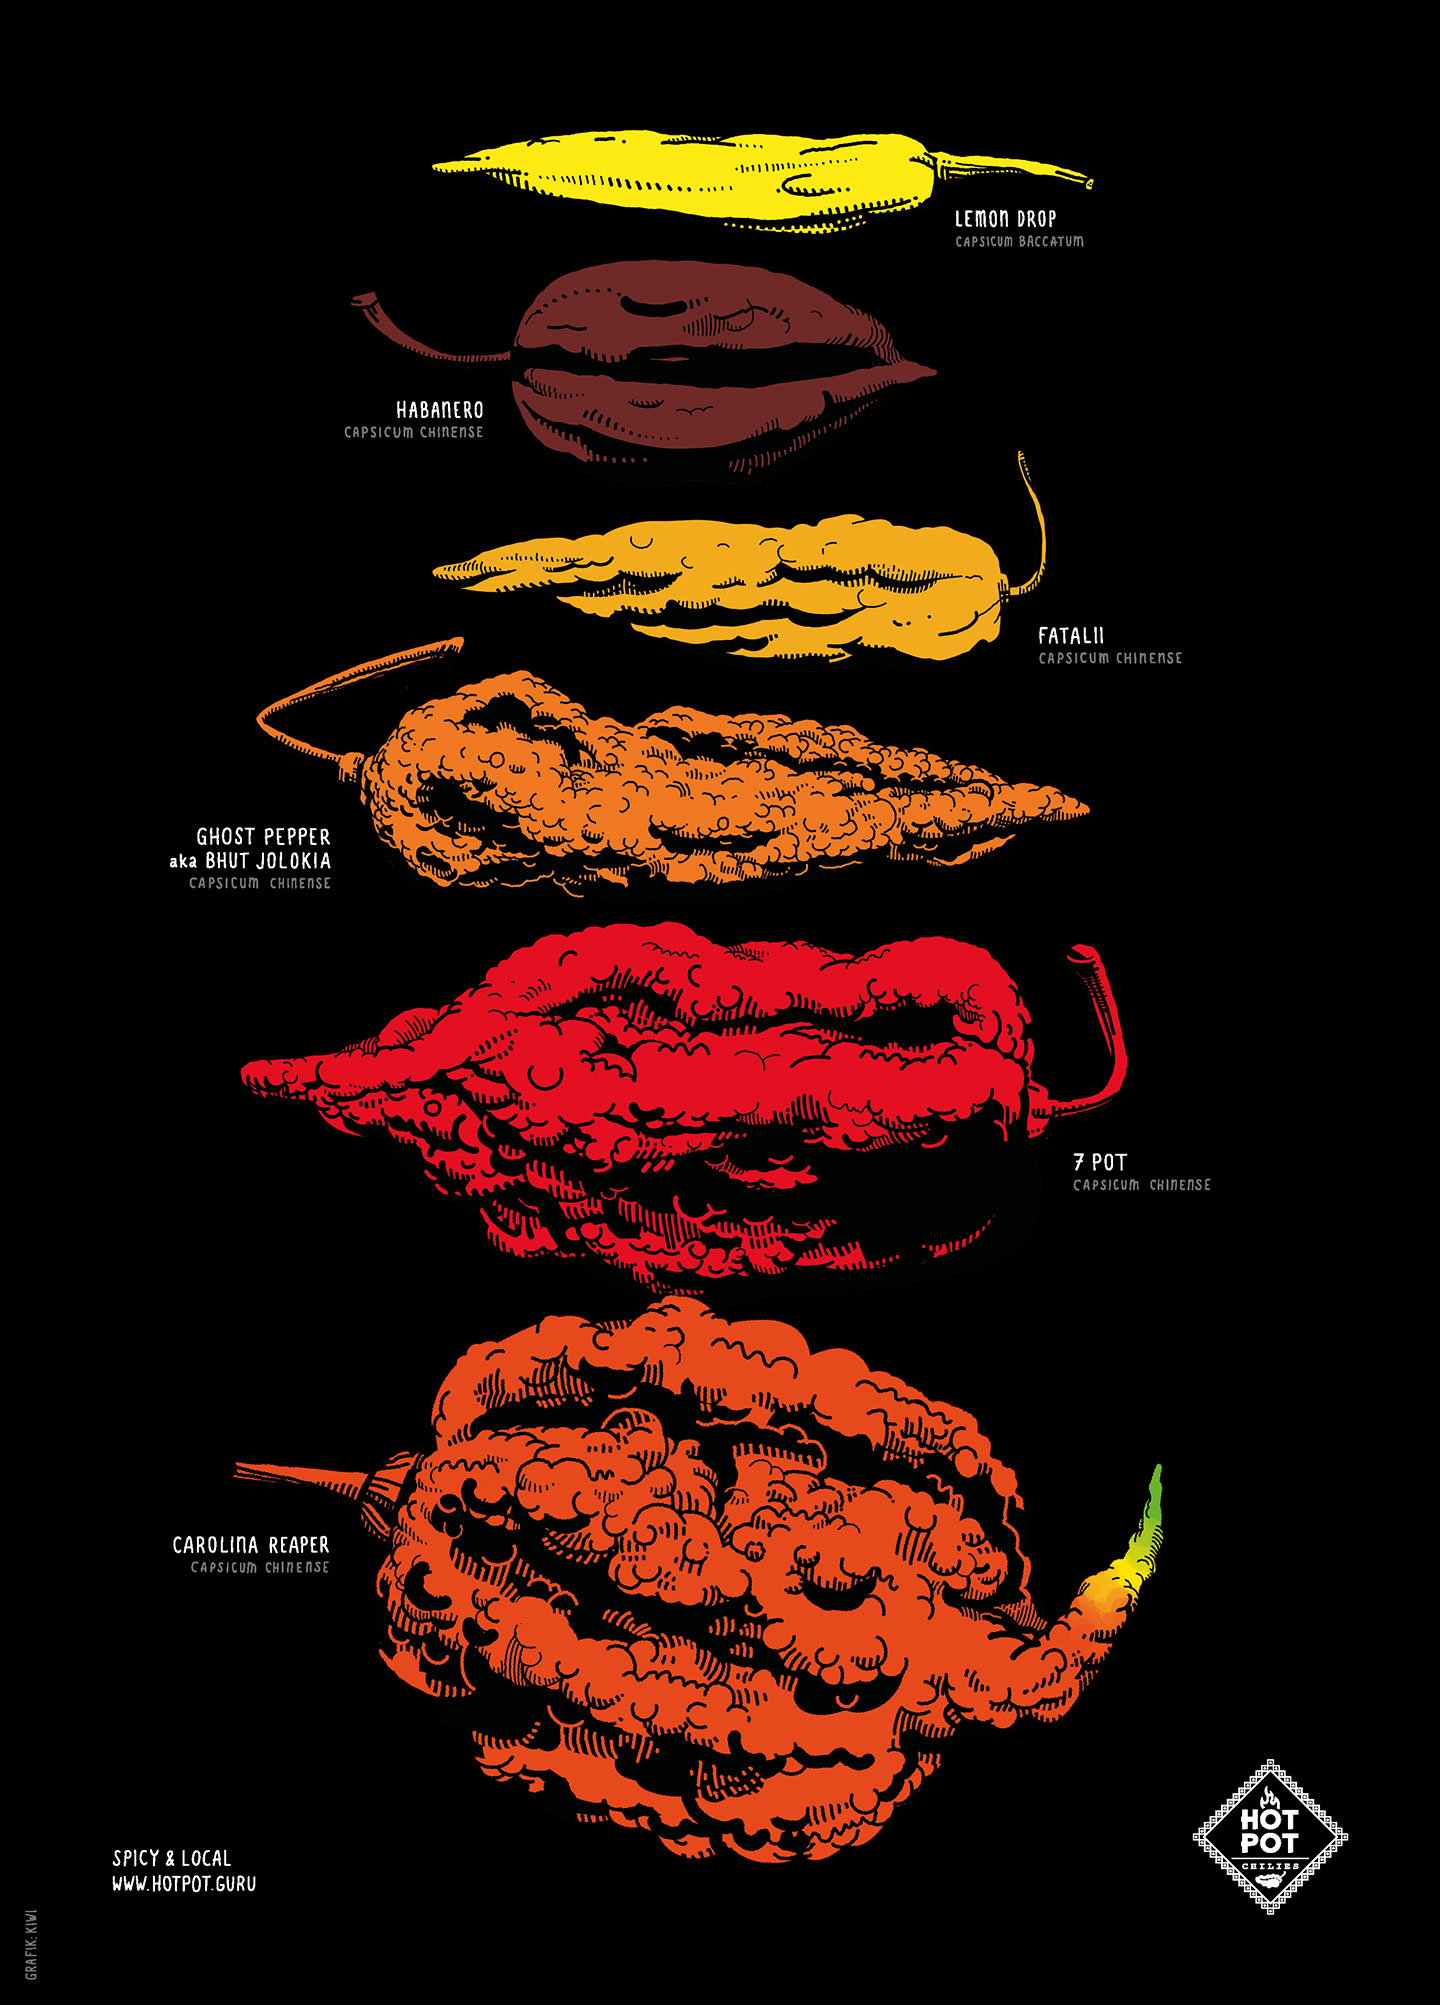 Plakat Chilischoten für Hot Pot Chilies, Lemon Drop, Habanero, Fatalii, Ghost Pepper (Bhut Jolokia), 7 Pot Barackpore, Carolina Reaper